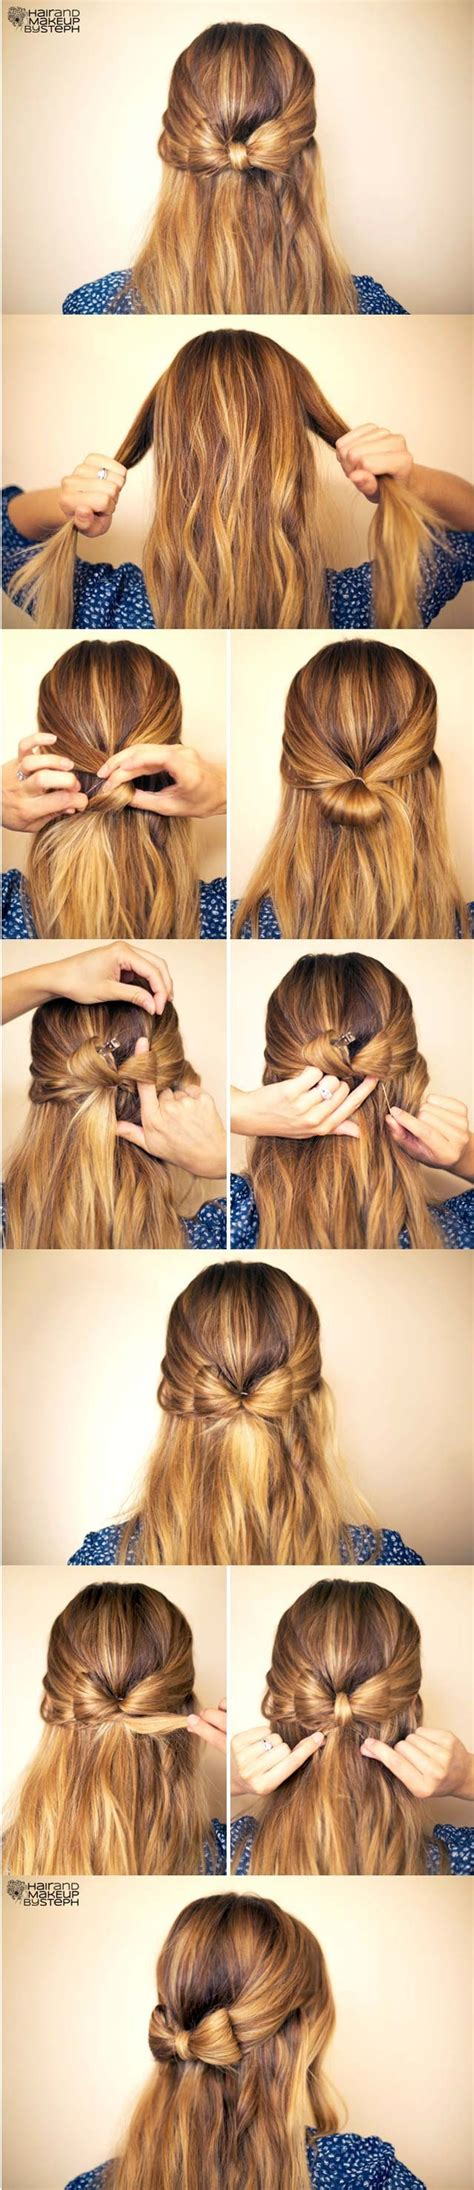 hair styles step by step with pictures easy hairstyles for long hair step by step cute hairstyles